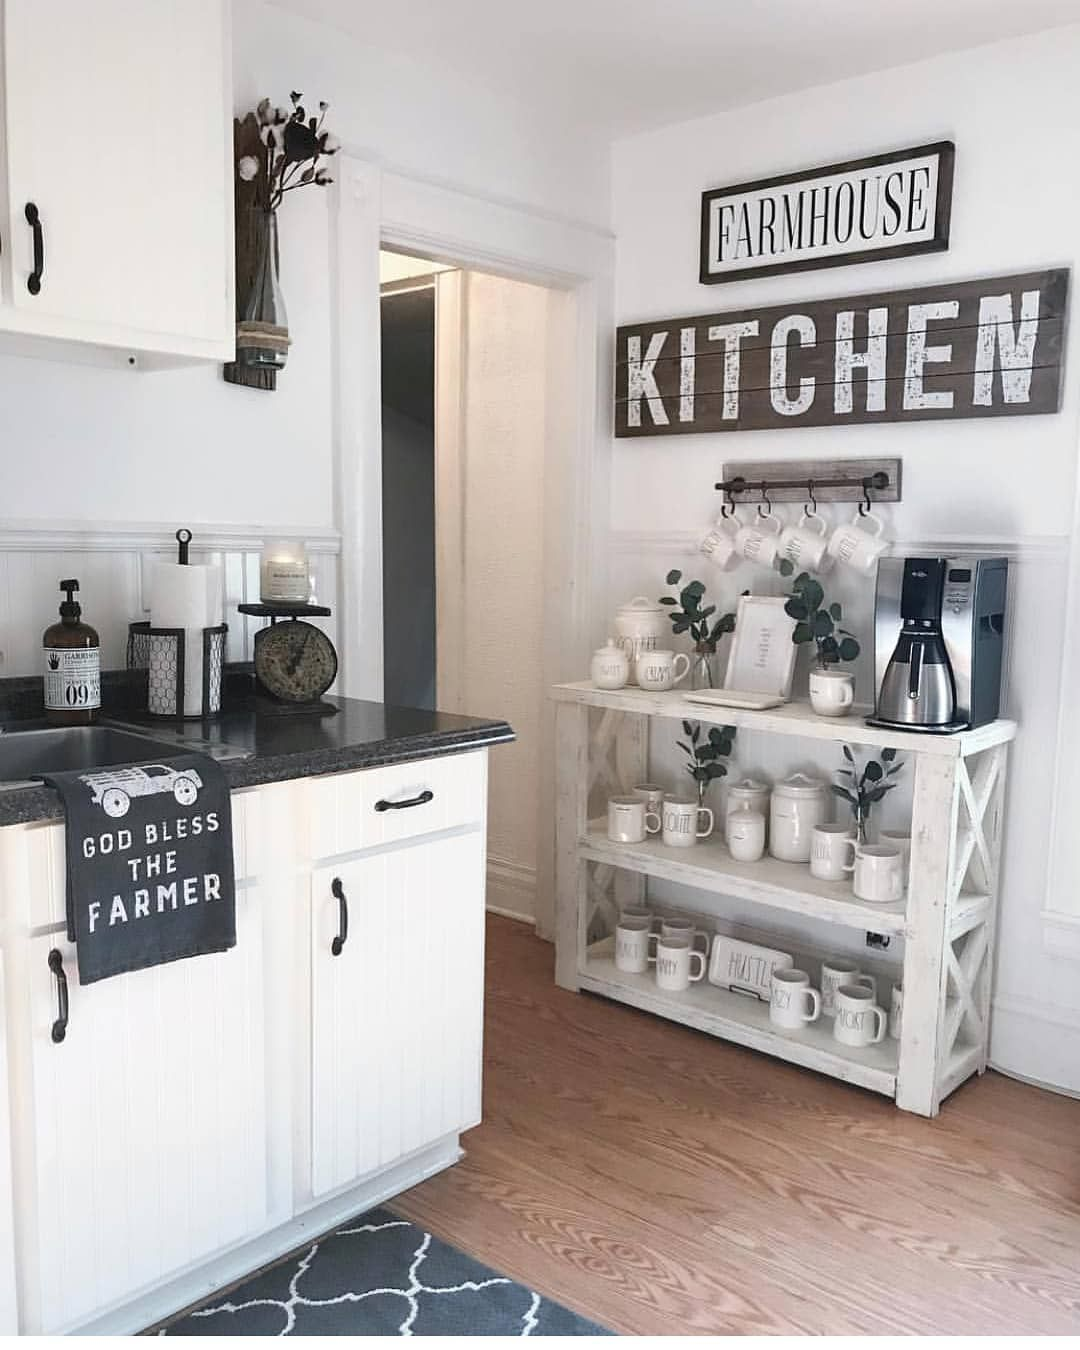 Alot Of Cute Kitchen Ideas Here! 😍 📧 Be Sure To Sign Up